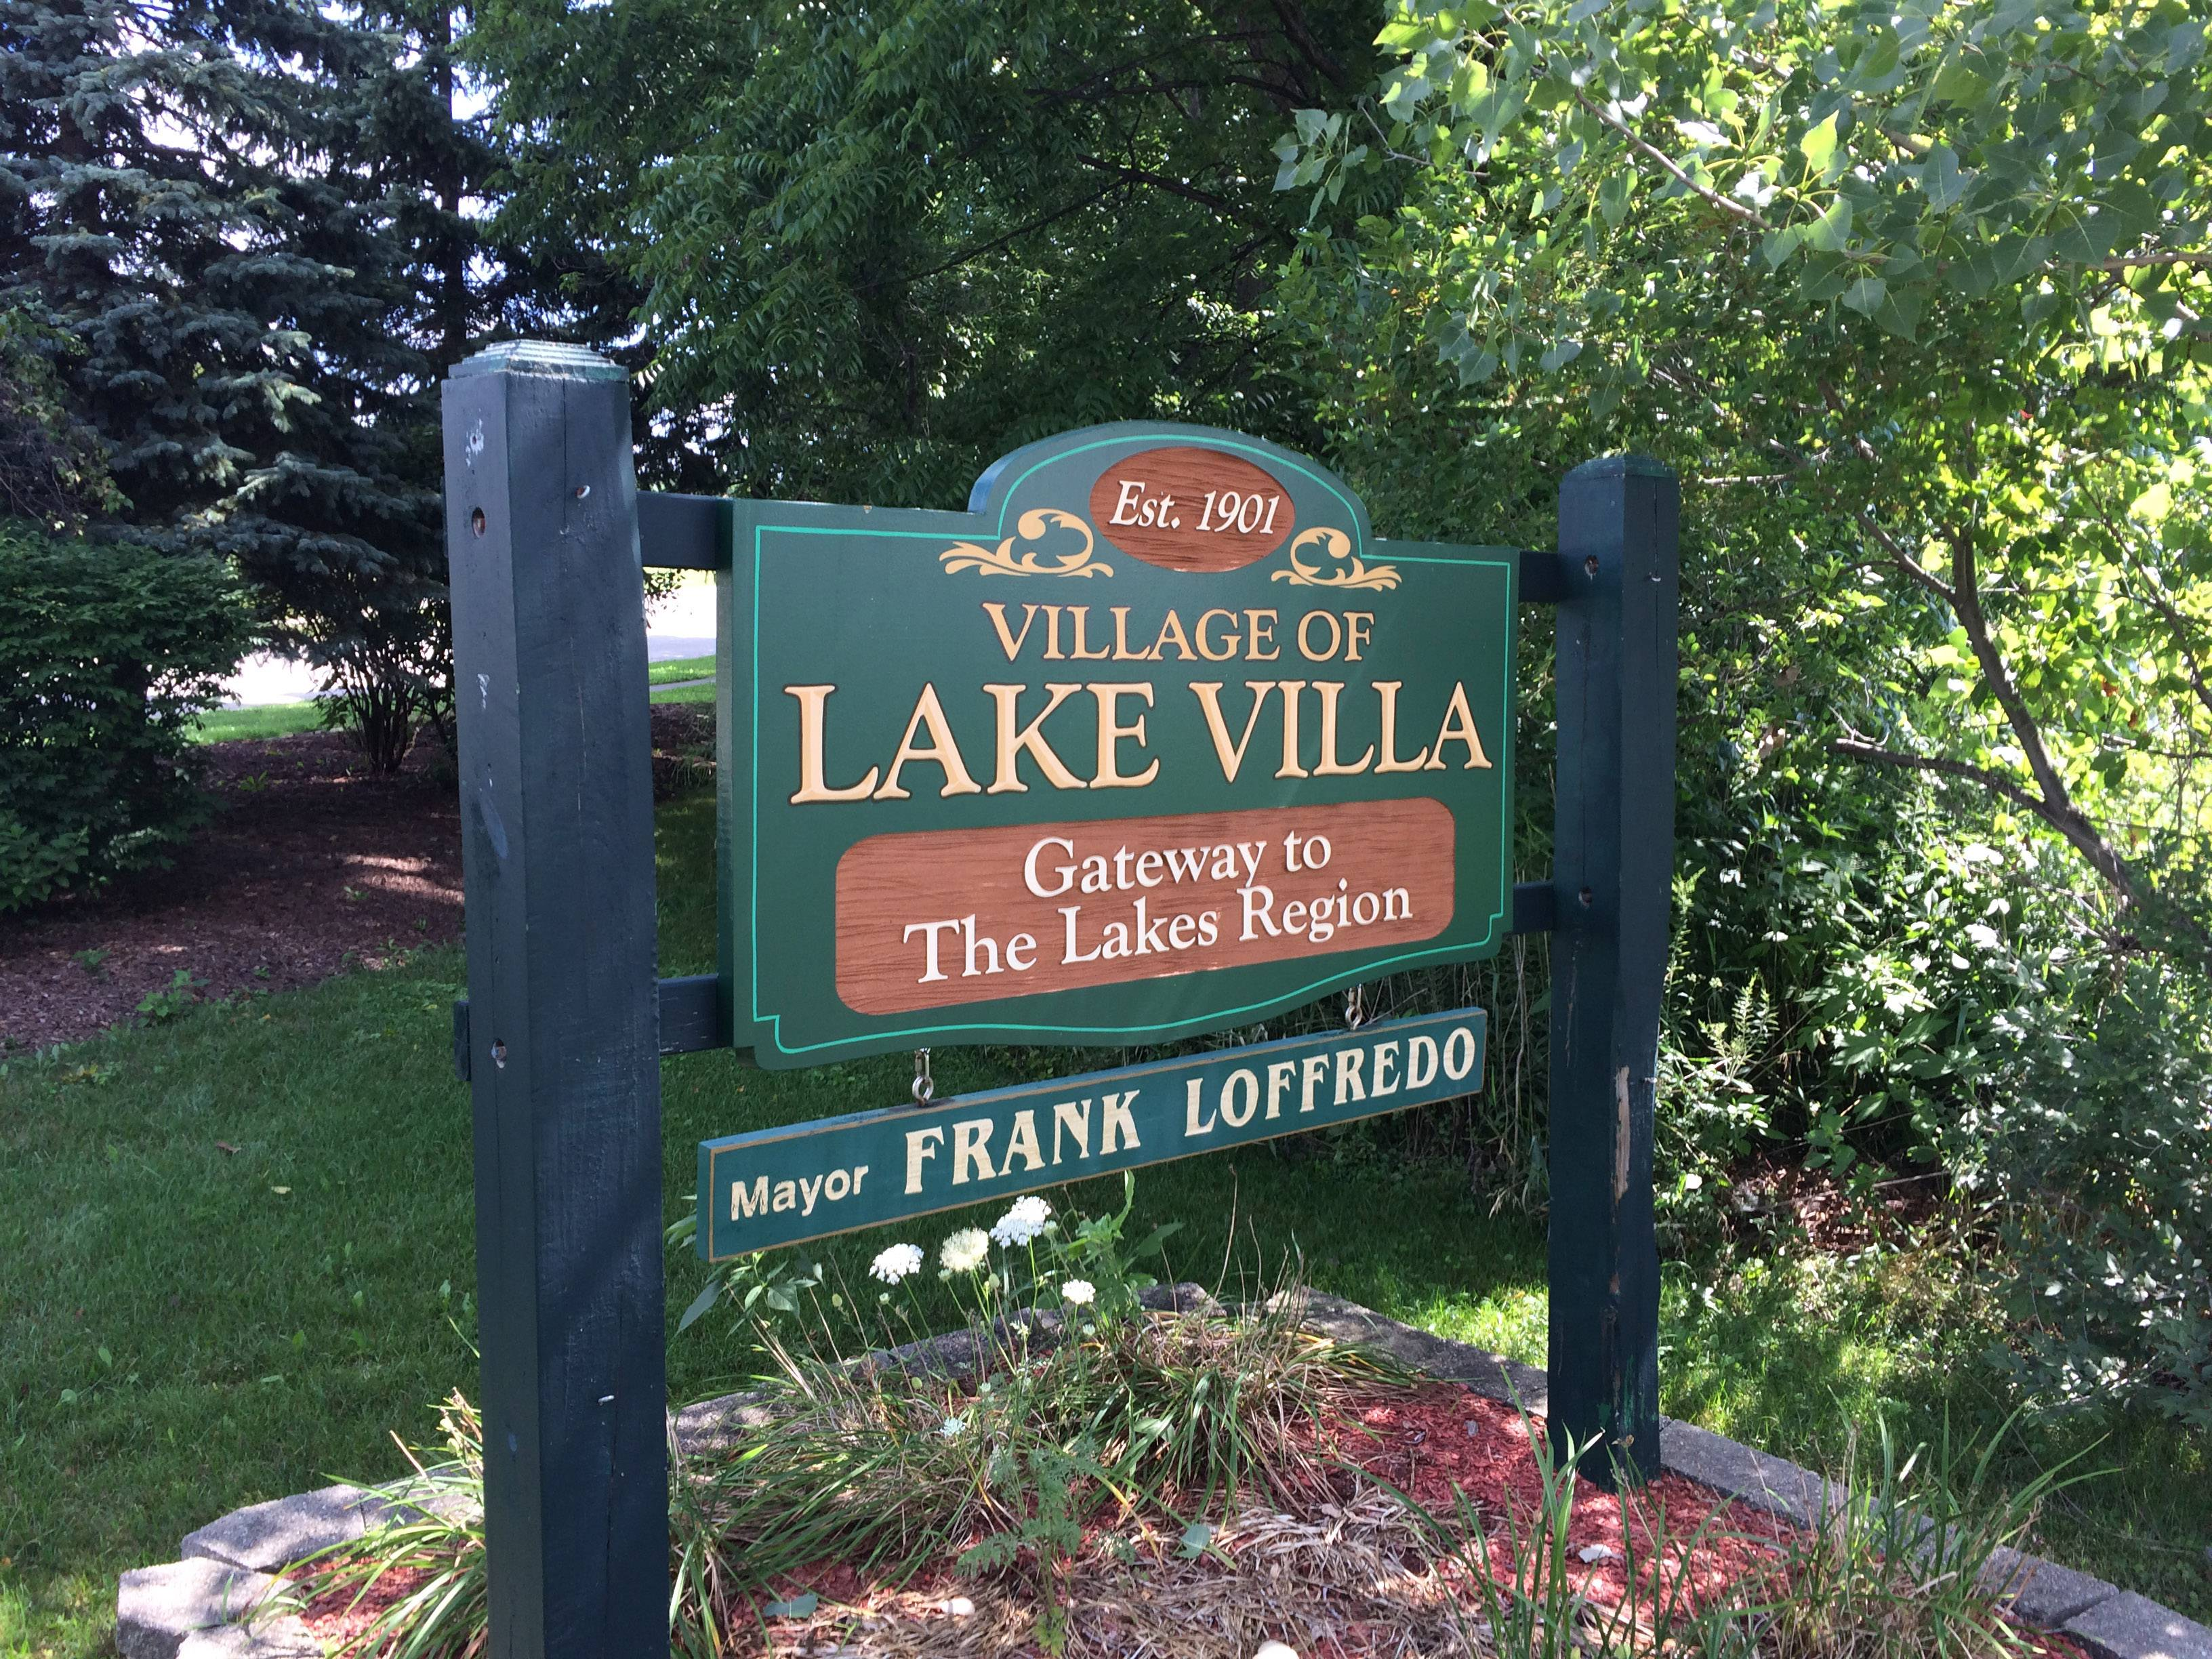 The village of Lake Villa was established in 1901. U.S. Census figures obtained in 2010 has the village with a population of 8,774.